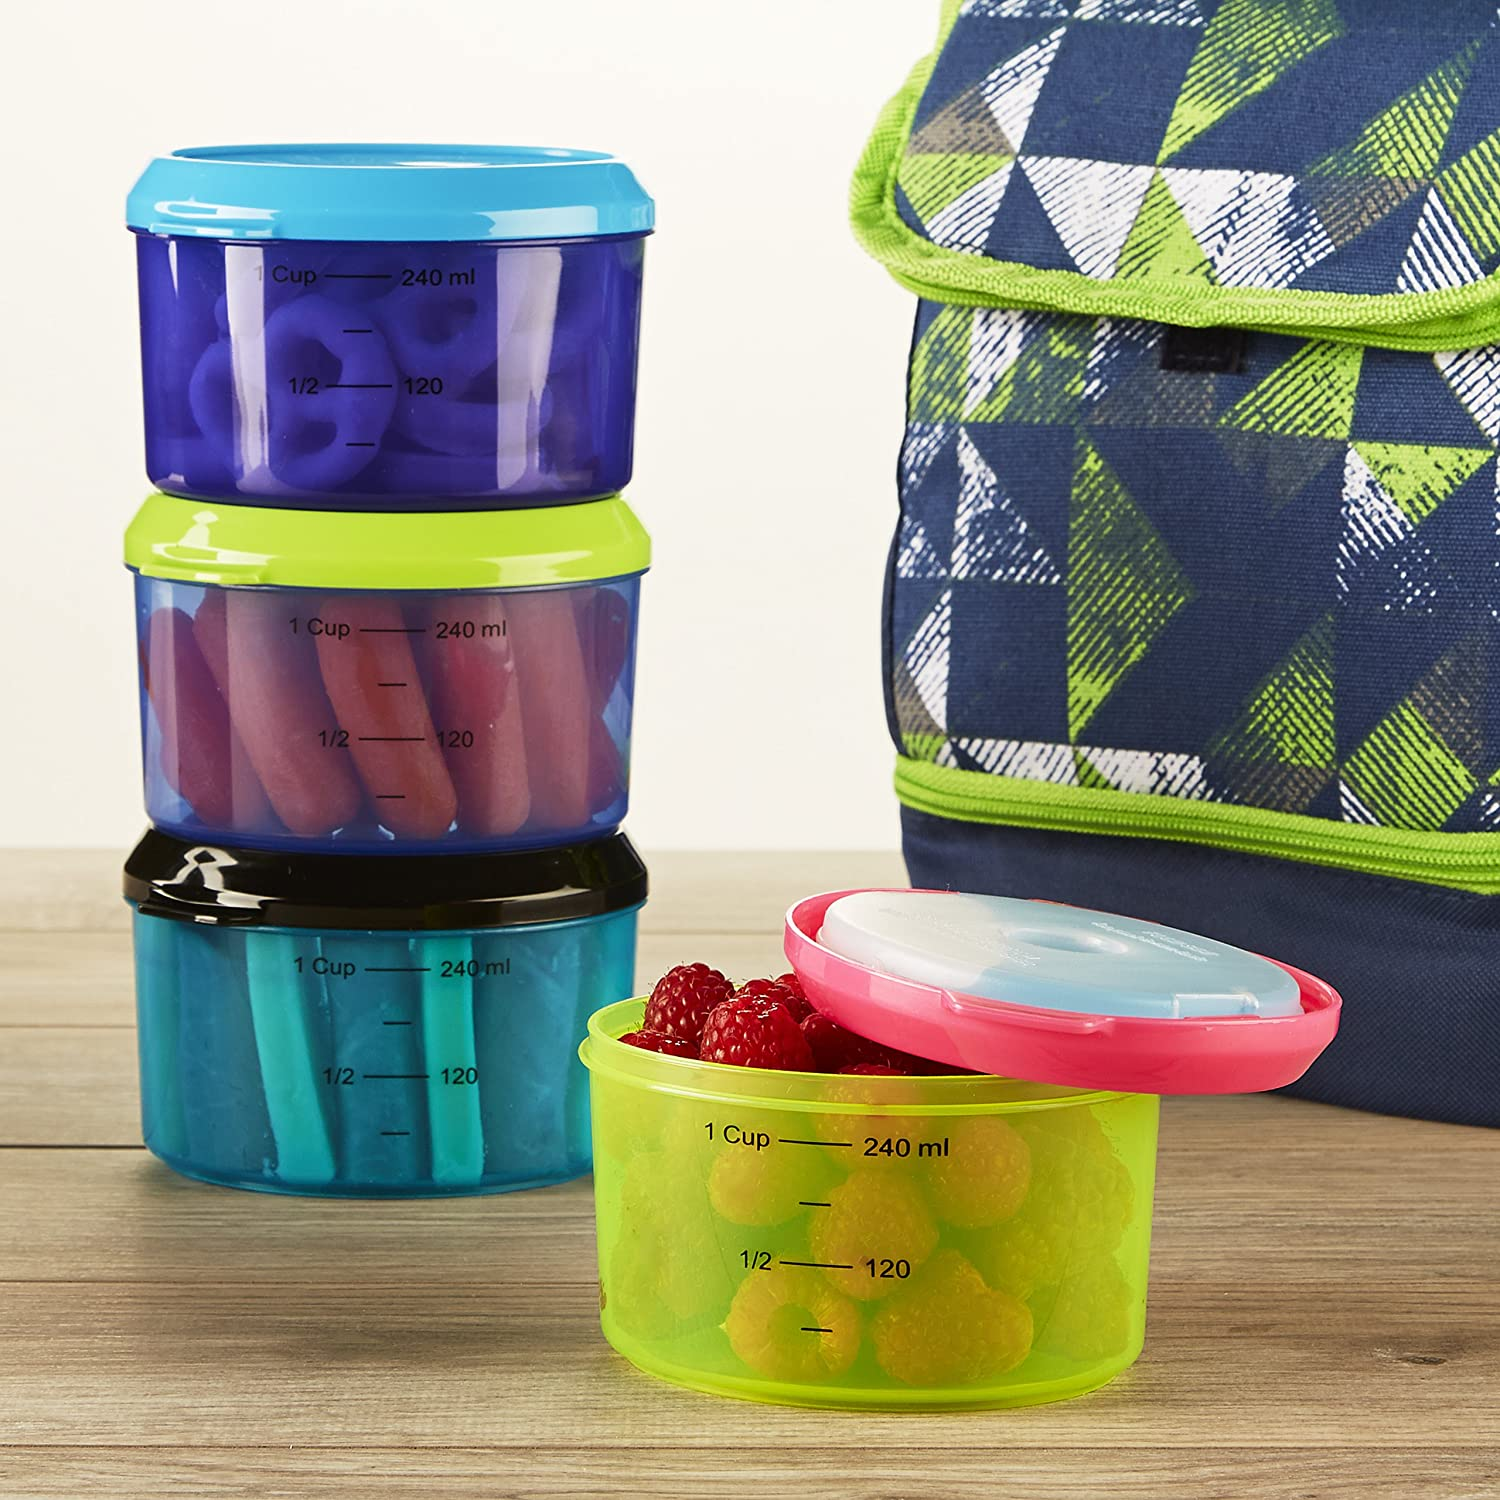 Fit & Fresh Kids' 1-Cup Chilled Containers, Set of 4 Reusable Portion Control Containers with Removable Ice Packs, BPA-Free, Freezer/Microwave/Dishwasher Safe